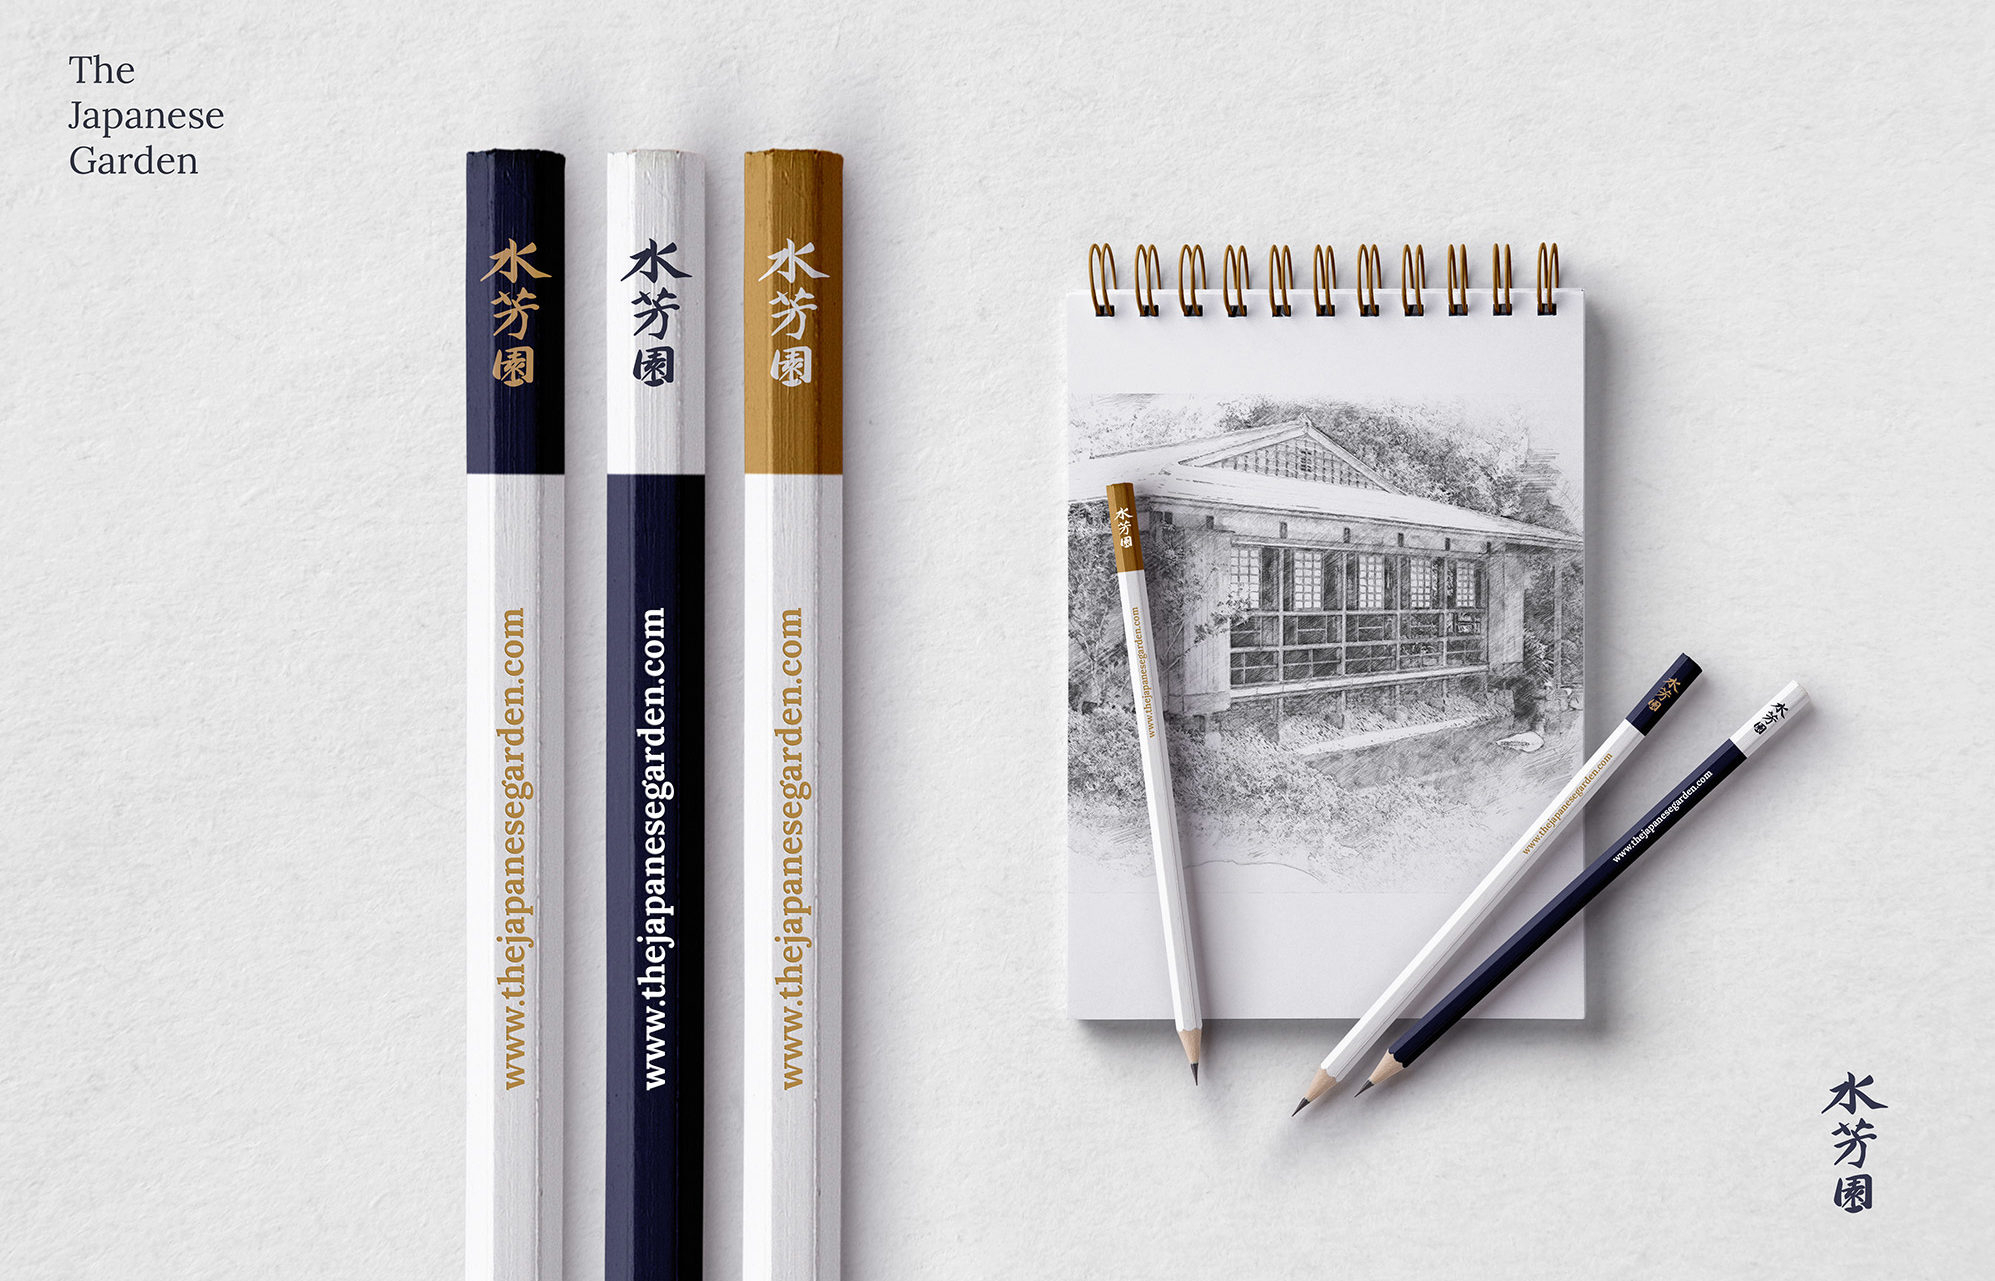 JapaneseGarden_14-Pencils-e1569001035830